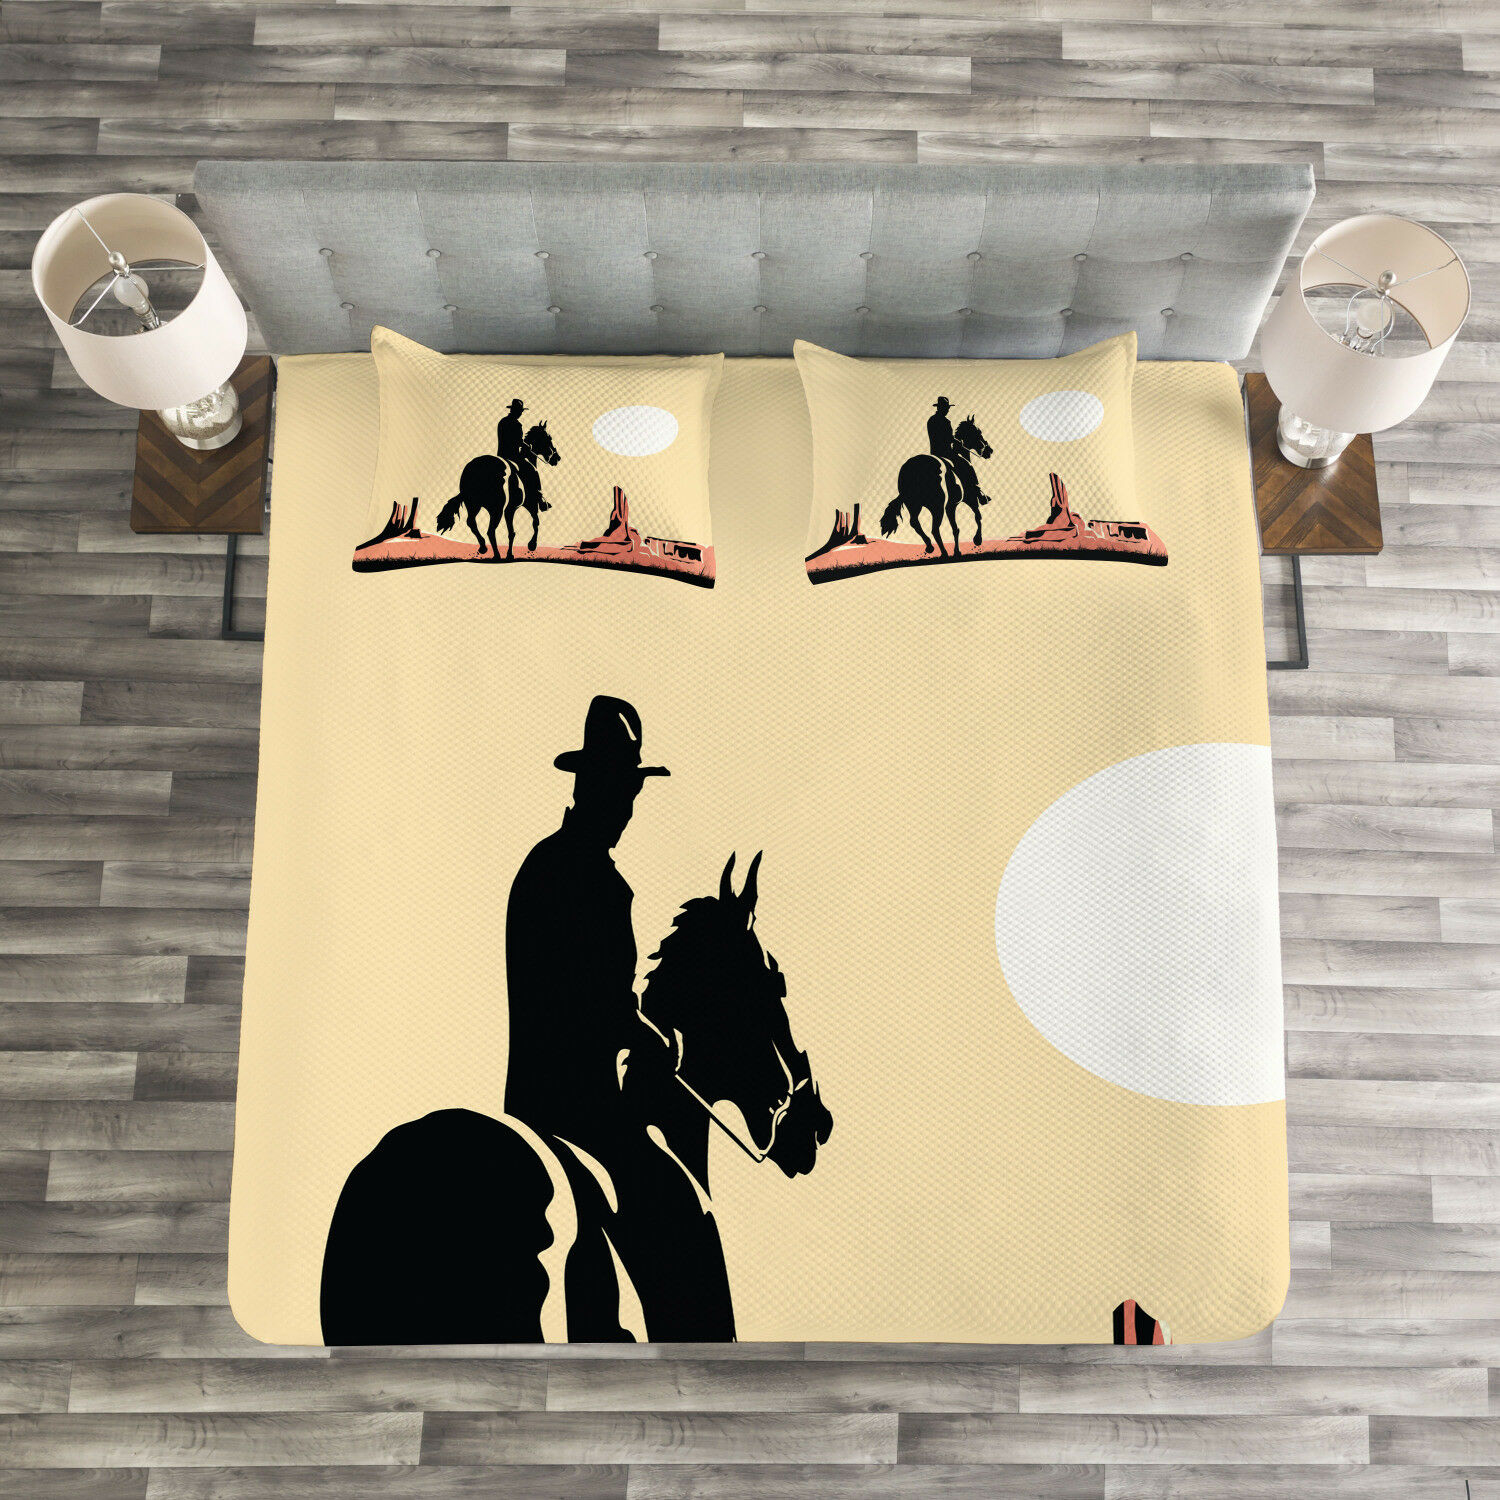 Western Quilted Bedspread & Pillow Shams Set, Cowboy Horse Sunset Print